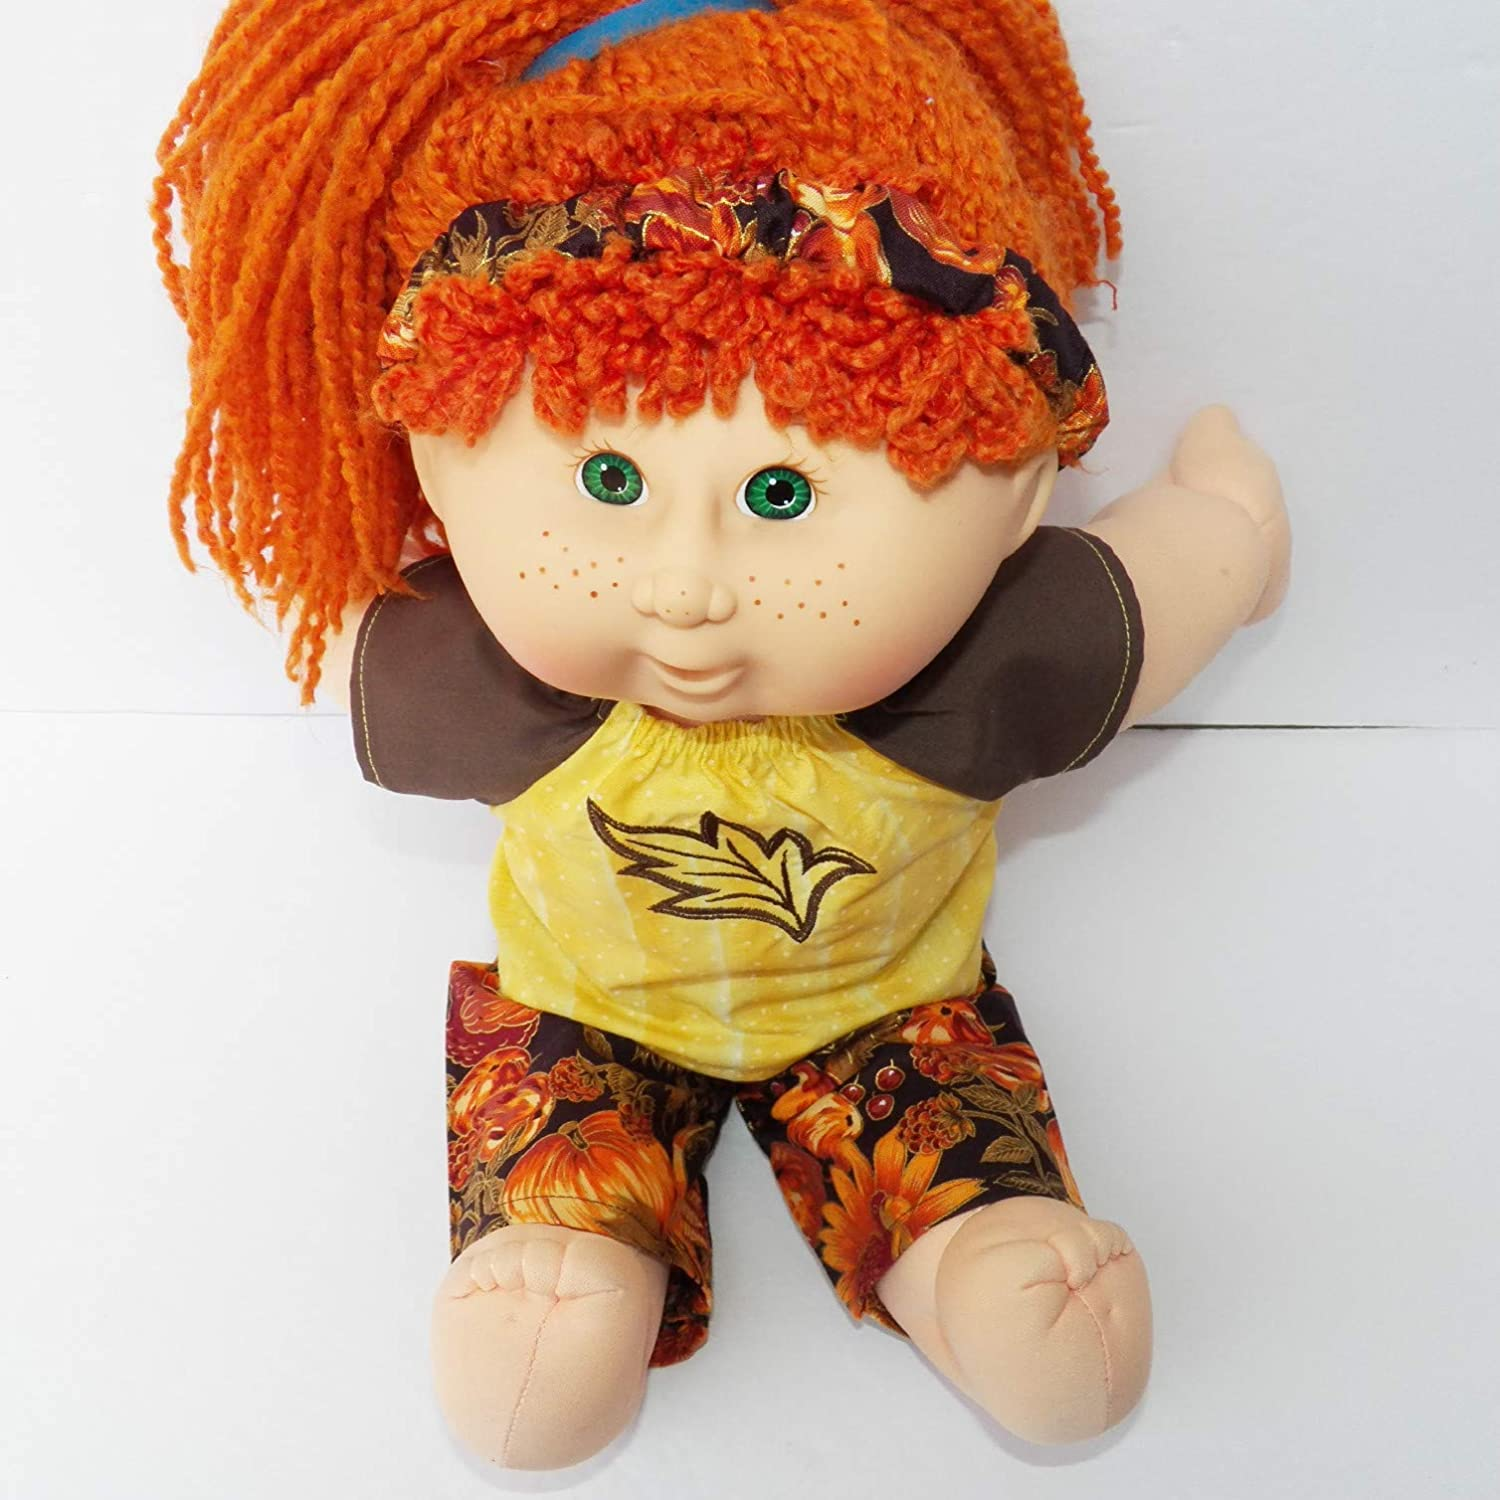 Cabbage Patch Doll Clothes 16 Inch Girl Yellow Blouse Pants and Headband